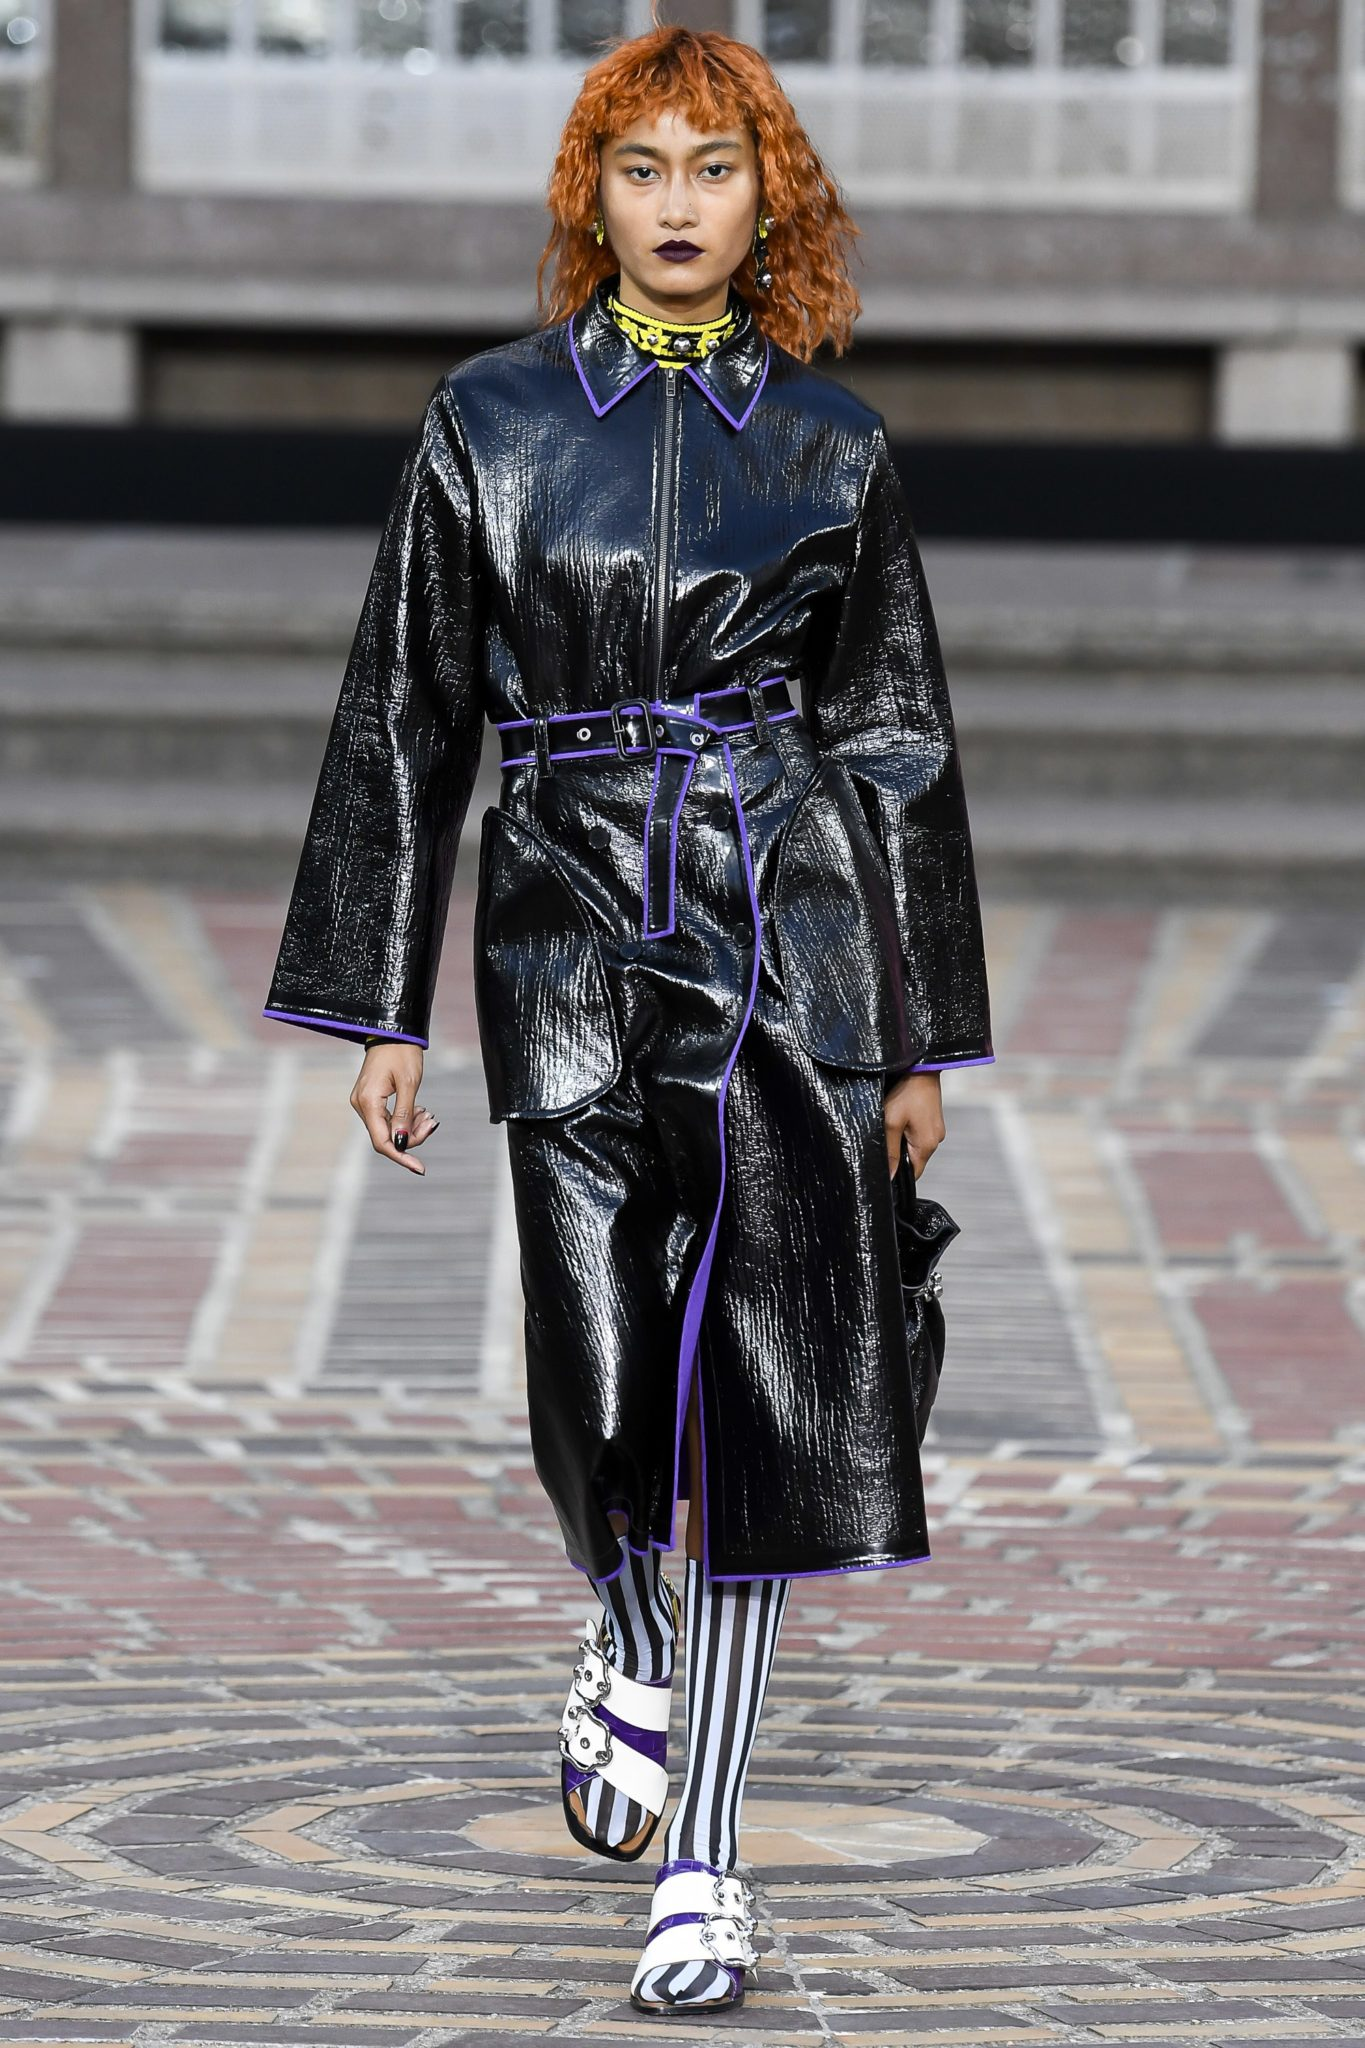 f78d63463 Spring 2018 trends - Spring Fashion Week 2018 Coverage